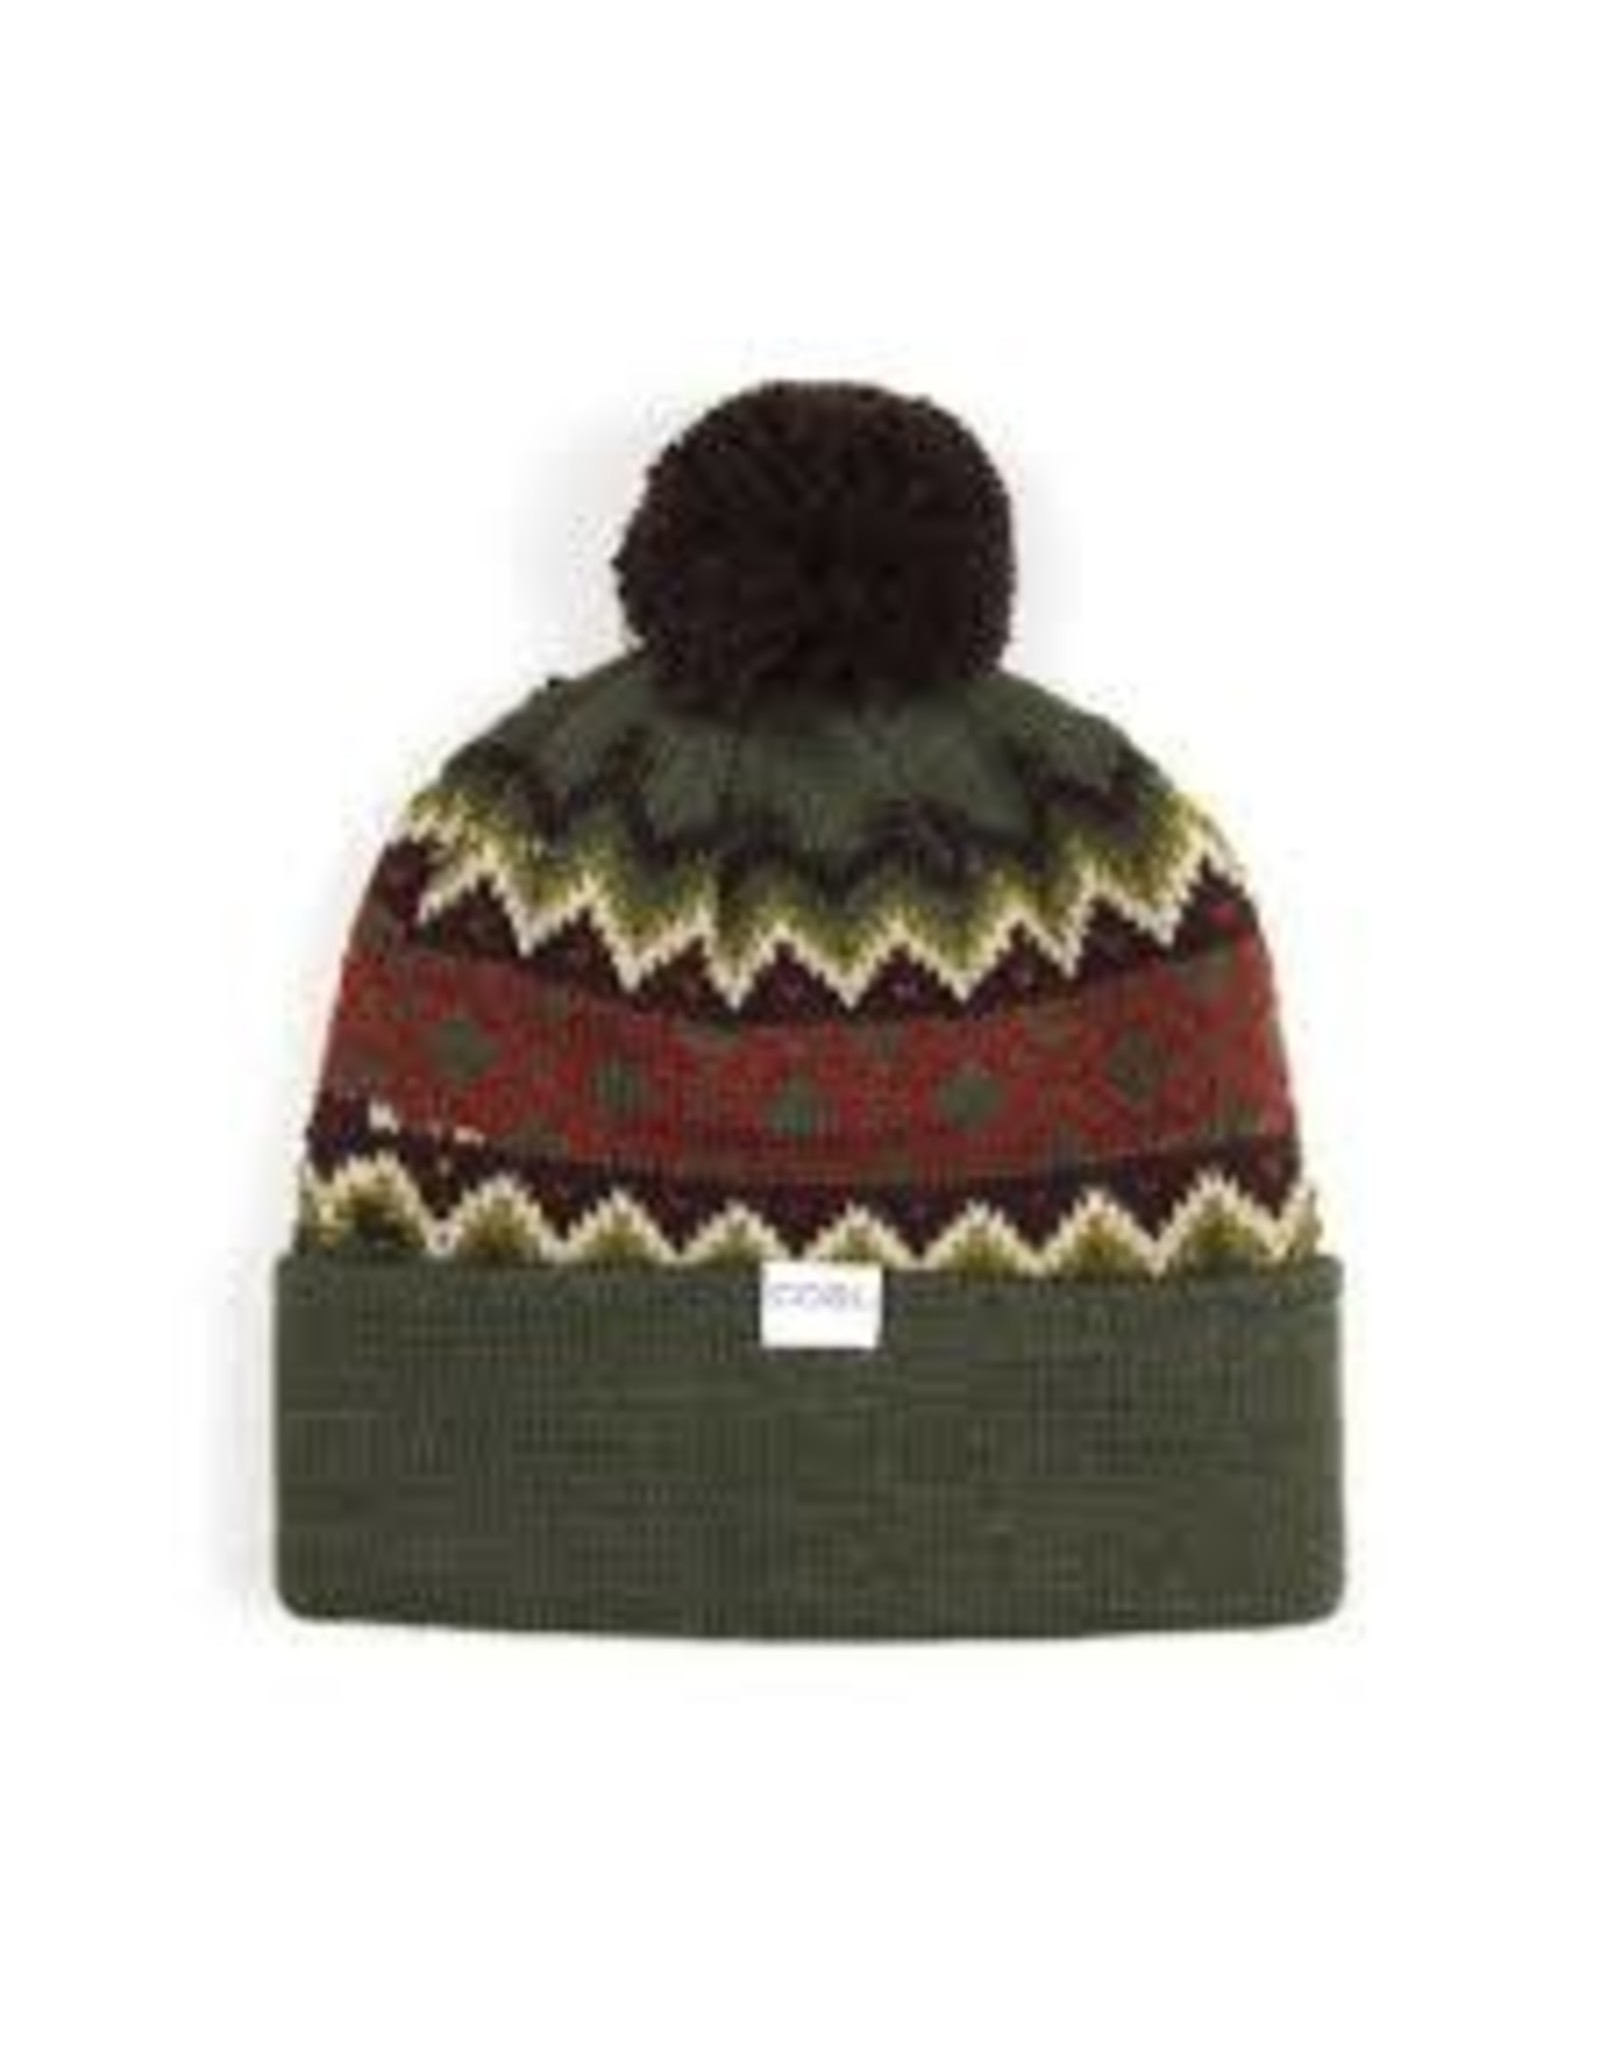 coal Coal - tuque the winters